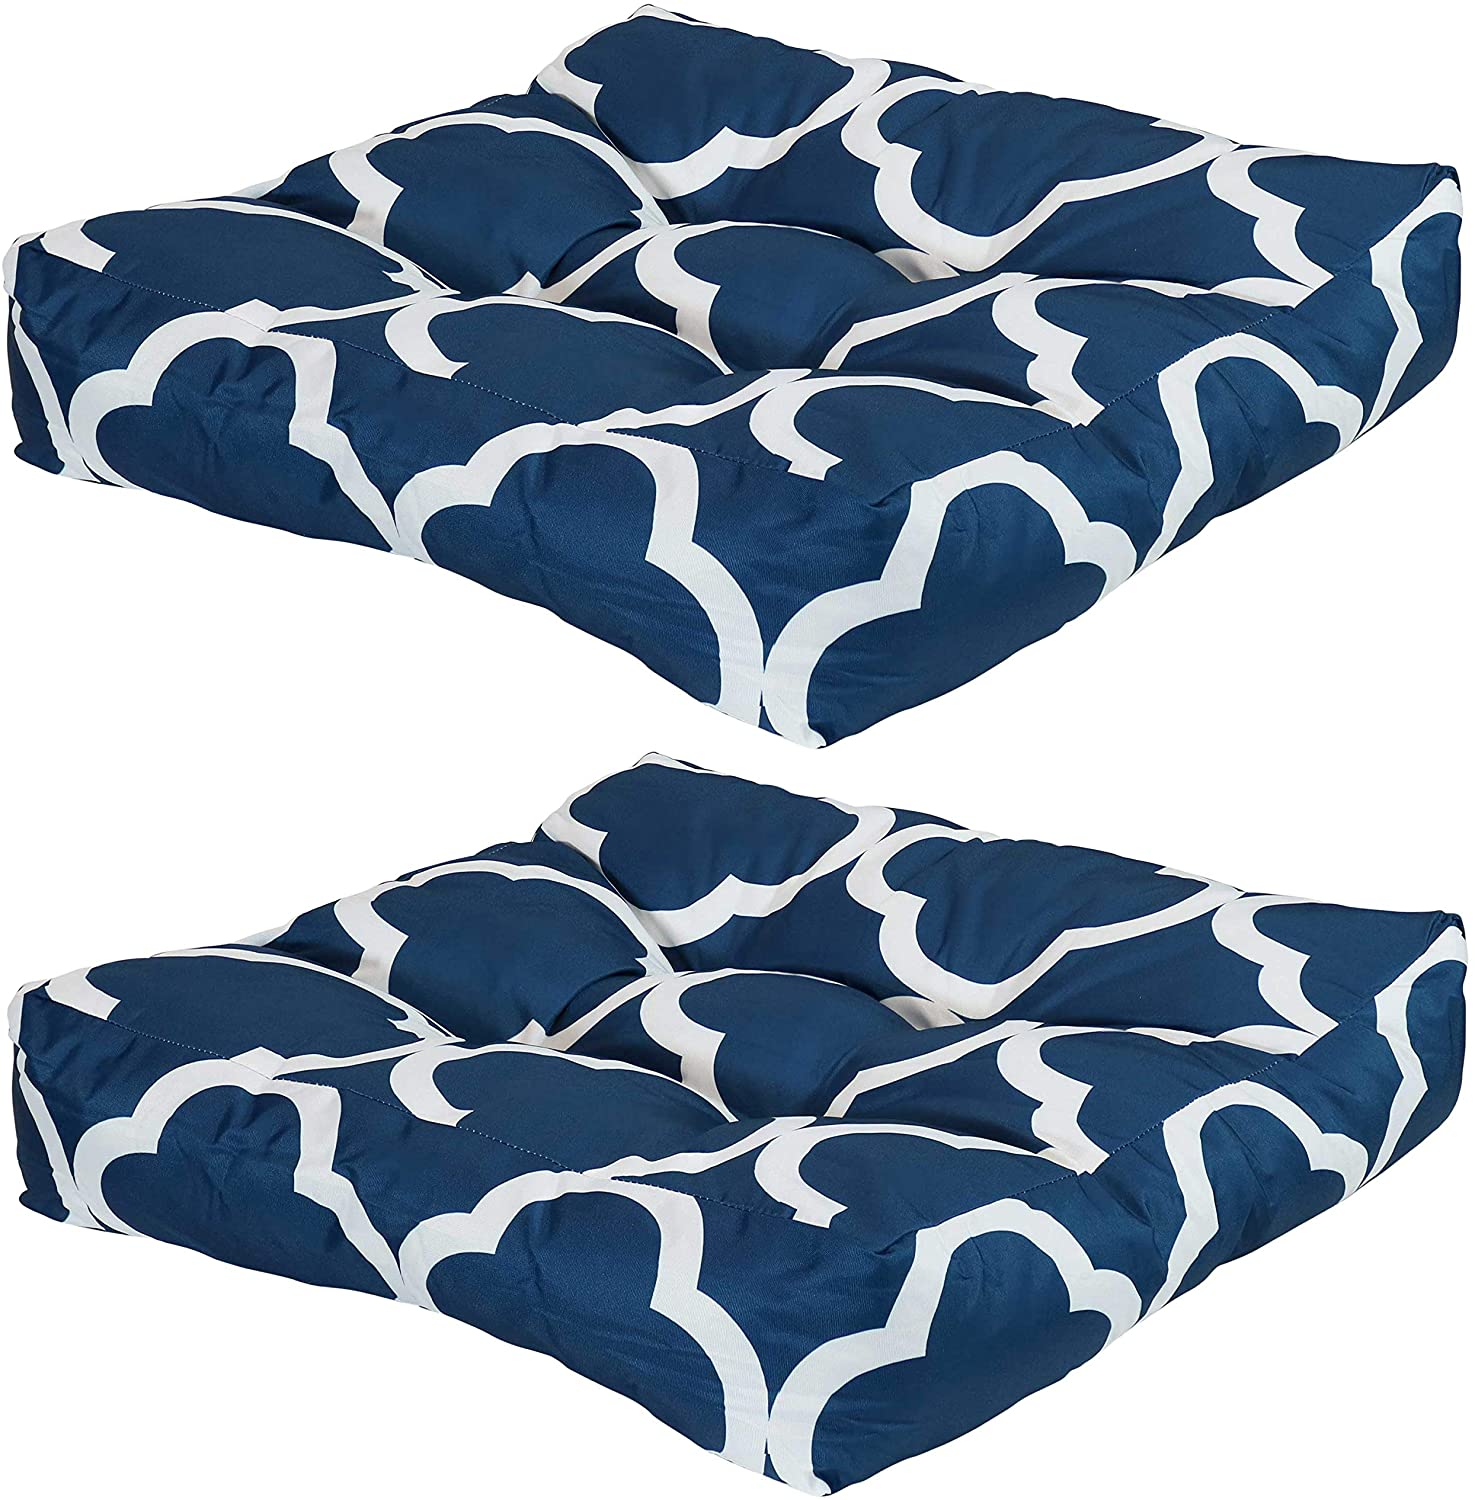 Sunnydaze Set of 2 Tufted Square Patio Cushions for Indoor/Outdoor Furniture - Replacement Cushions for Chairs and Seating - Seat Pads for Porch, Deck and Garden Seats - Navy Blue and White Quatrefoil